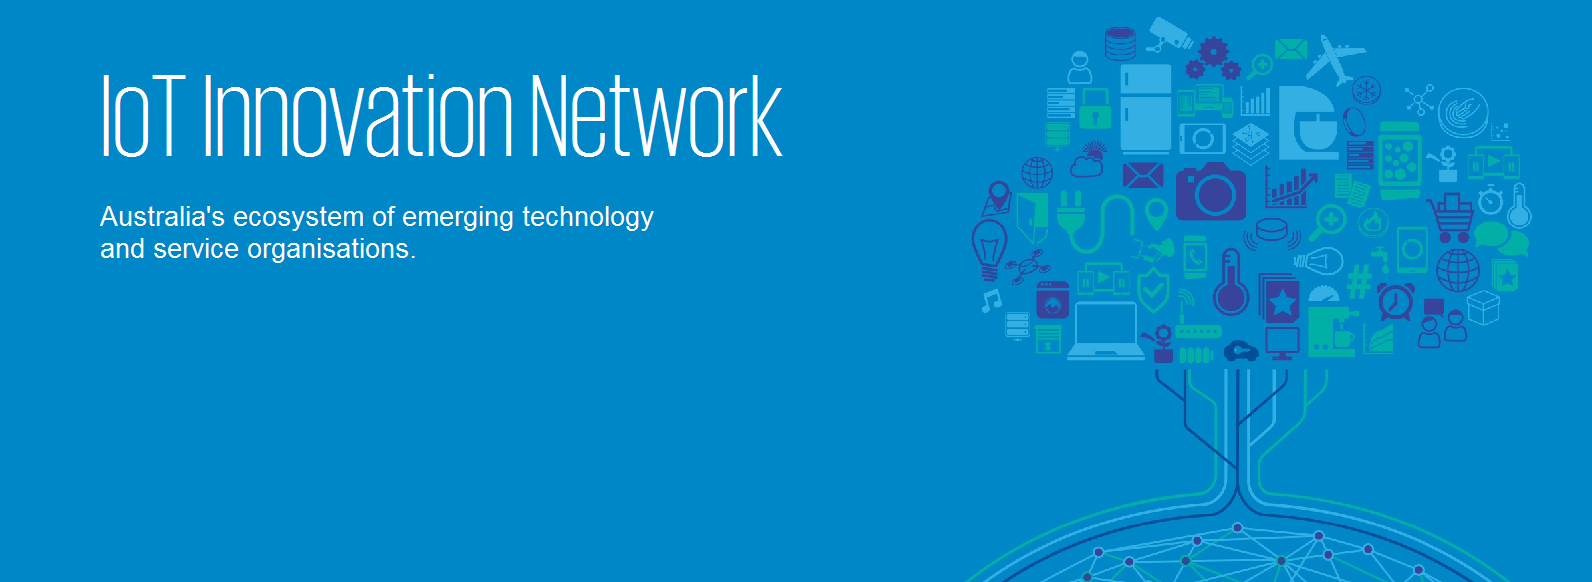 IoT Innovation Network